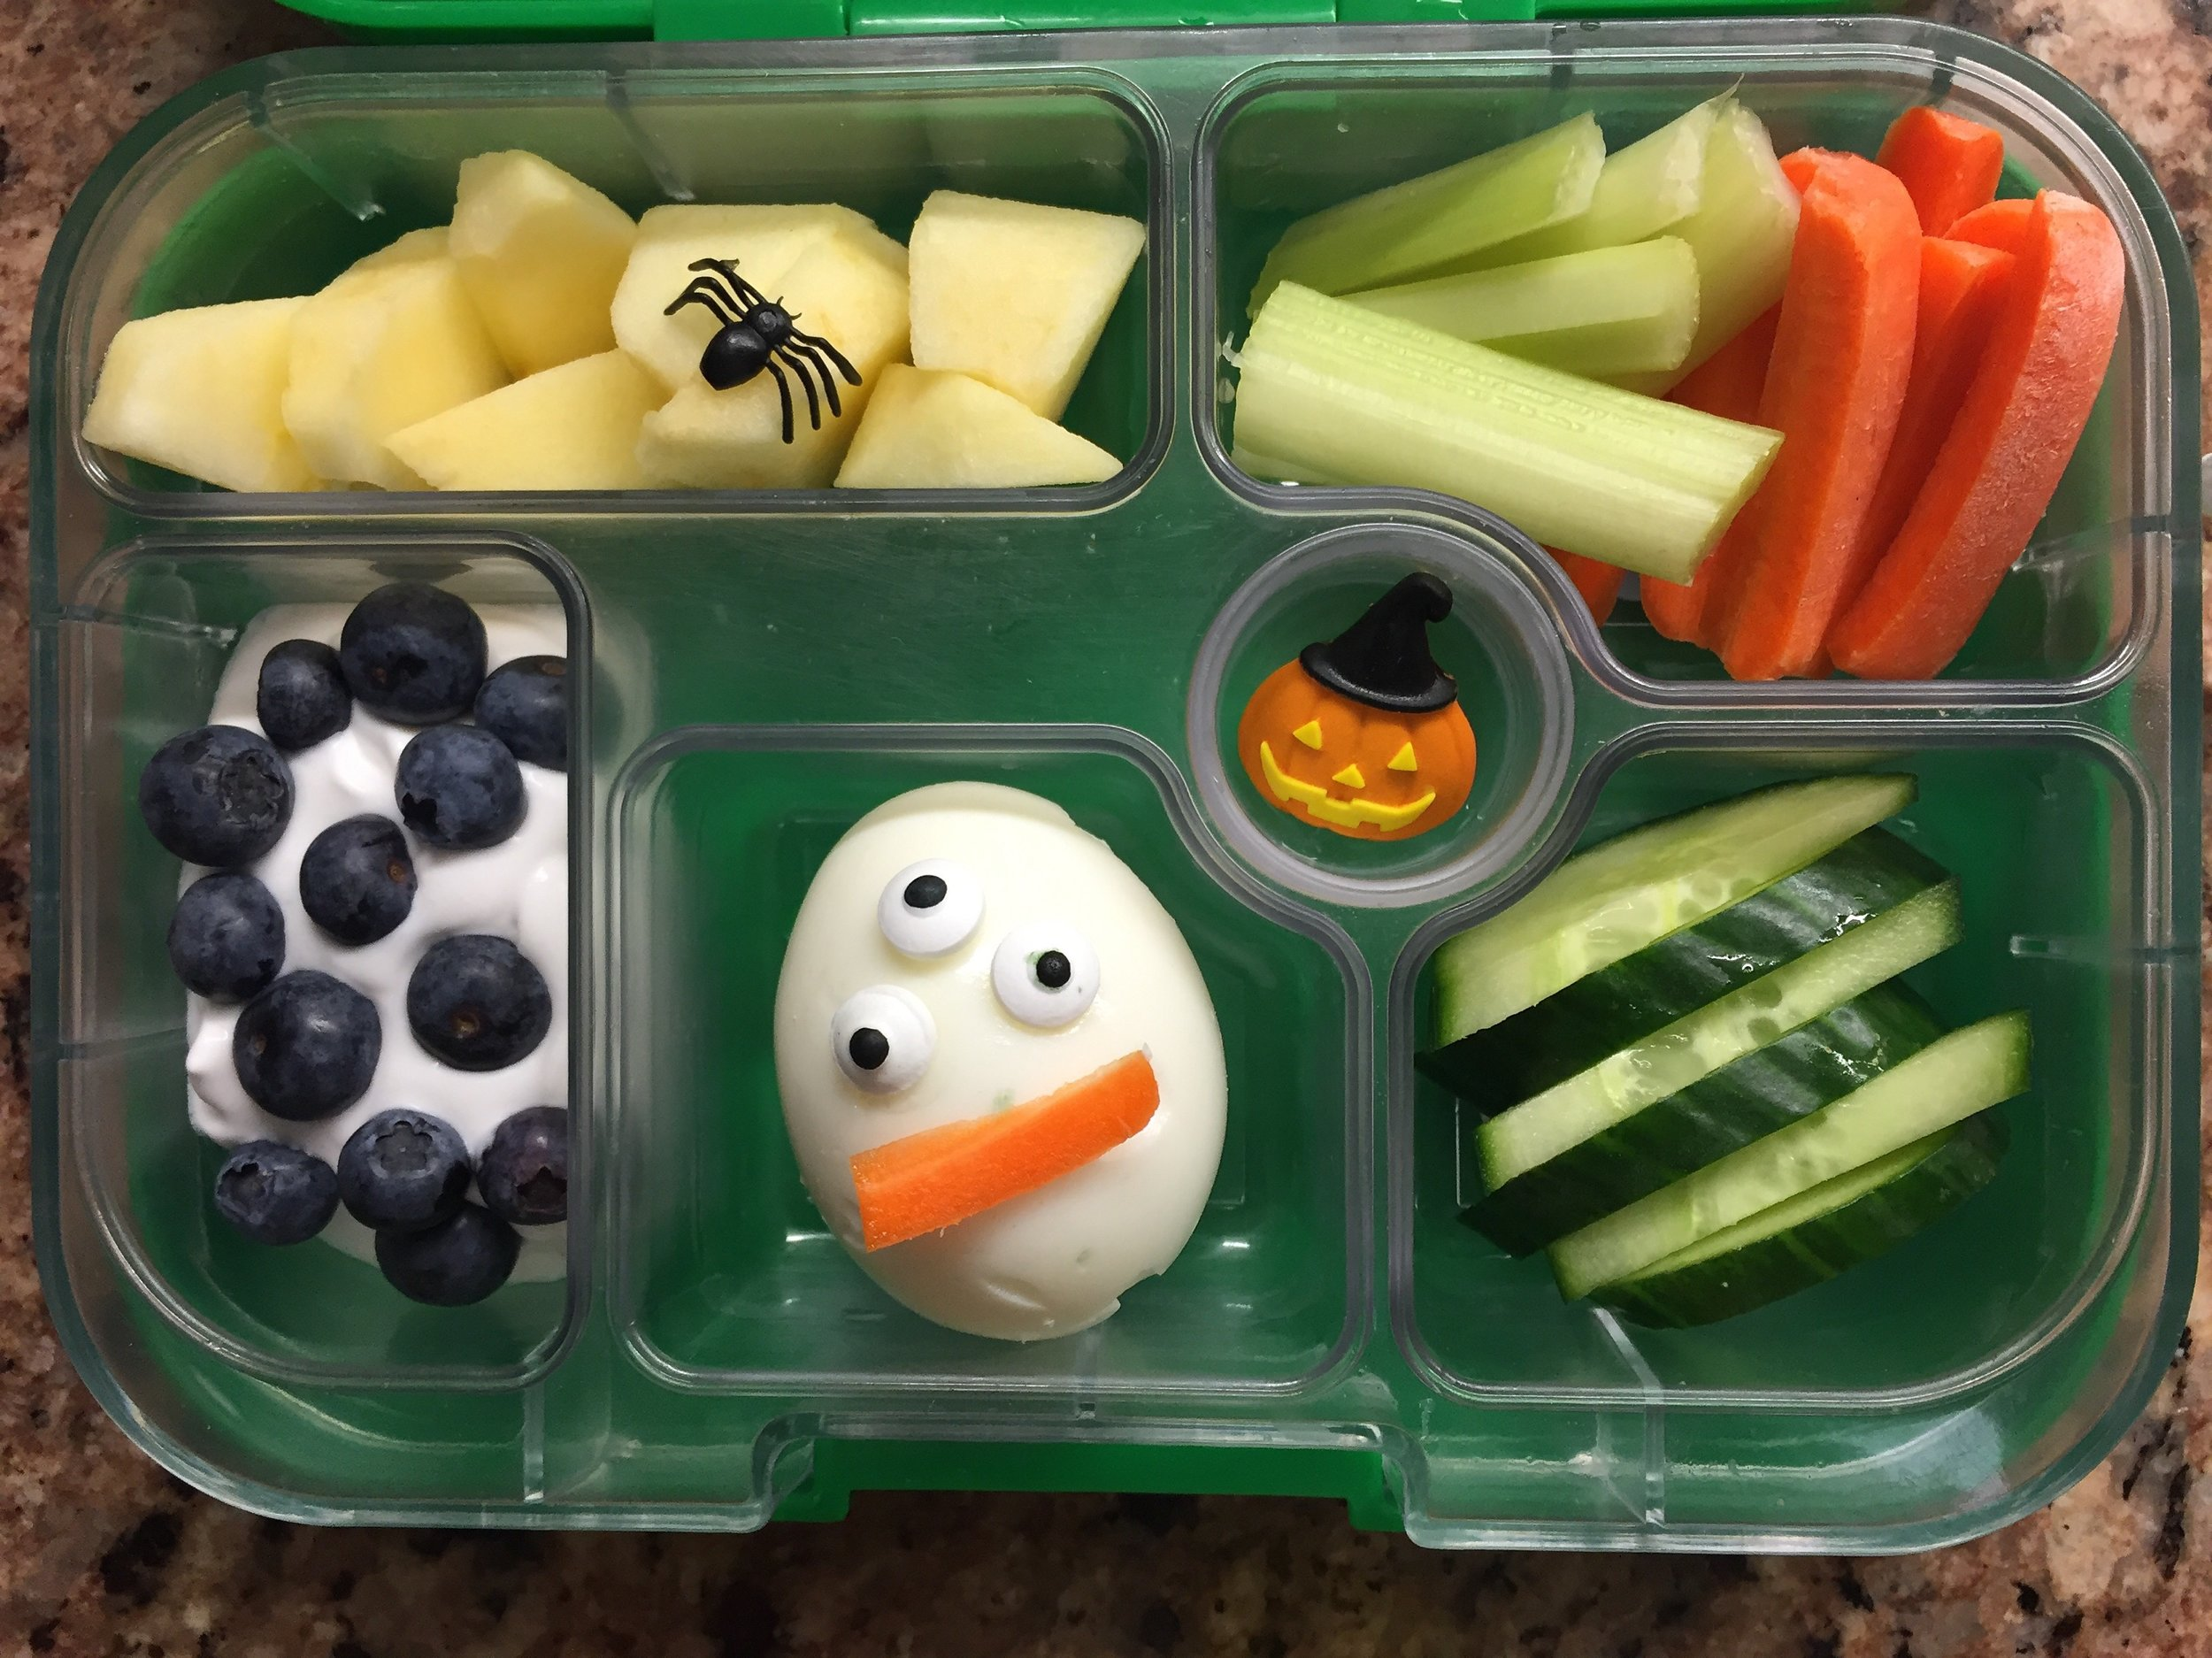 Egg monster, veggies, apples with spider, yogurt with blueberries.